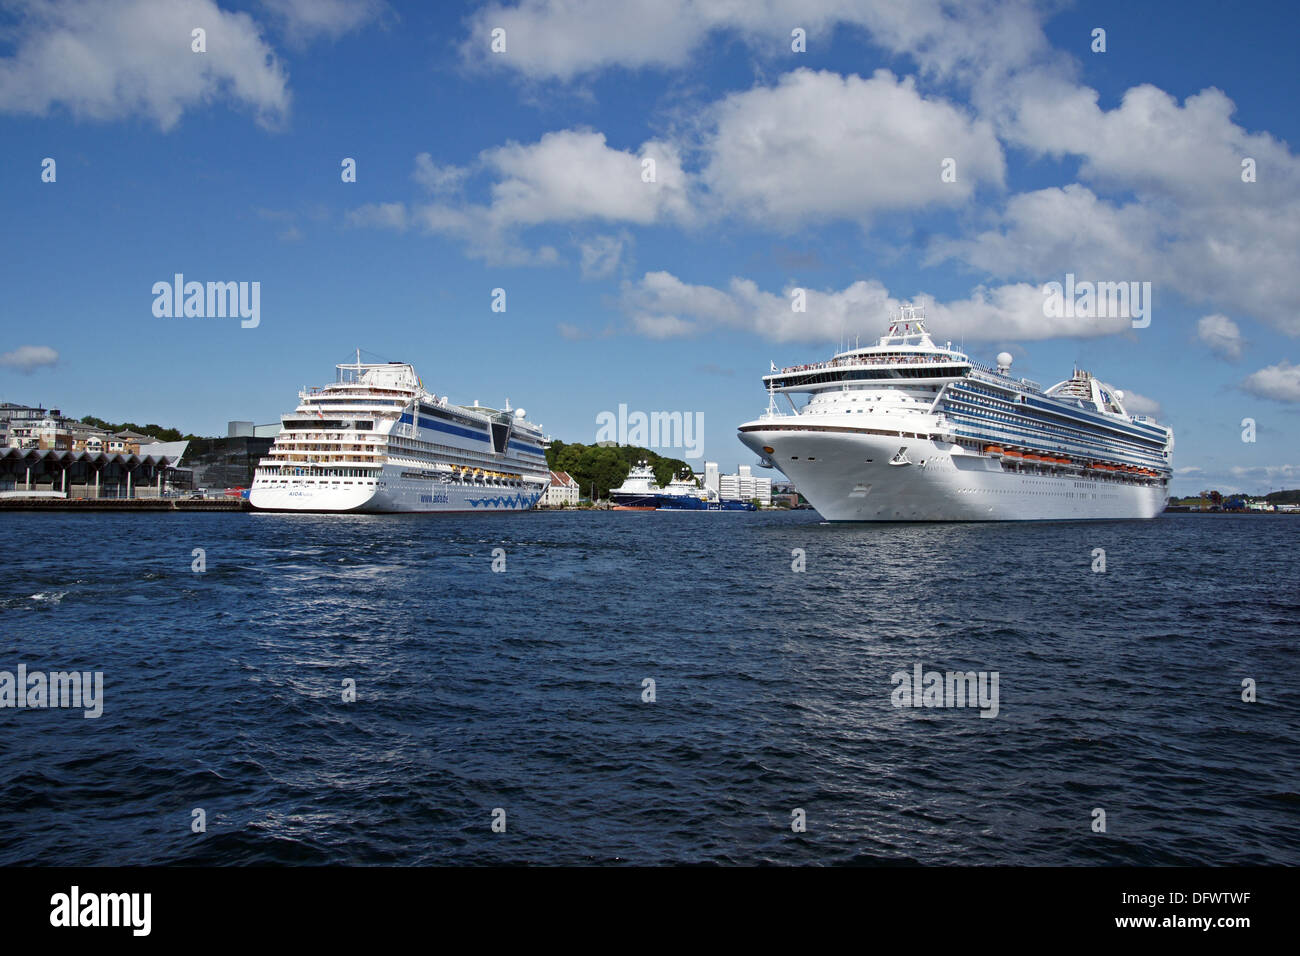 Cruise ship Aida Luna in Stavanger Harbour Norway with Grand Princess arriving - Stock Image